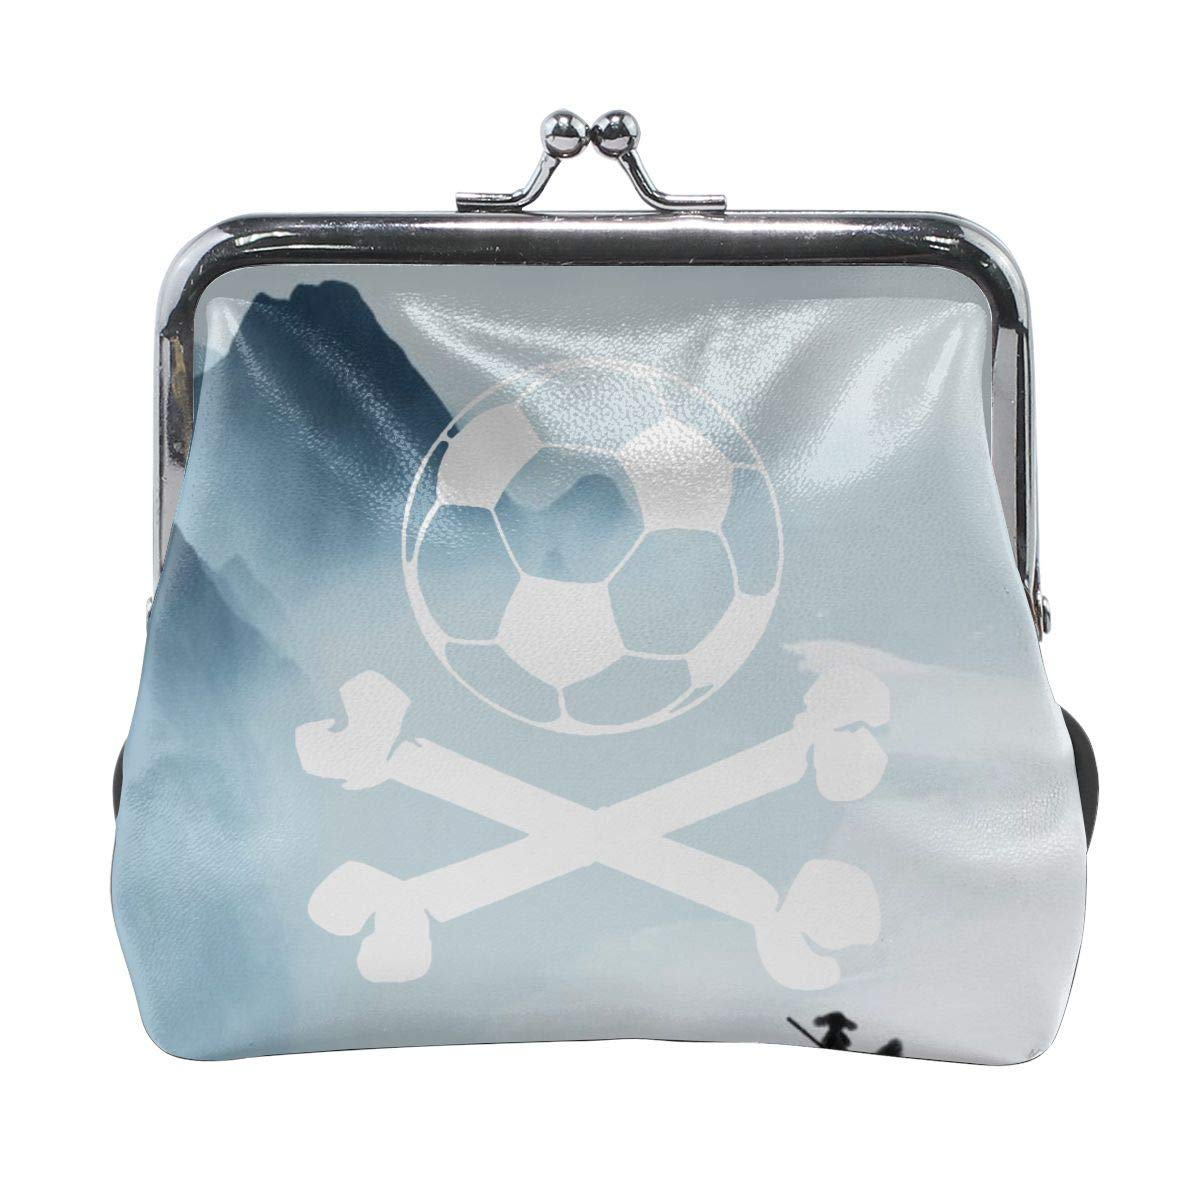 Exquisite Soccer Ball Logo Pirate Skull Cross Bones Cash Buckle Coin Purse For Womens